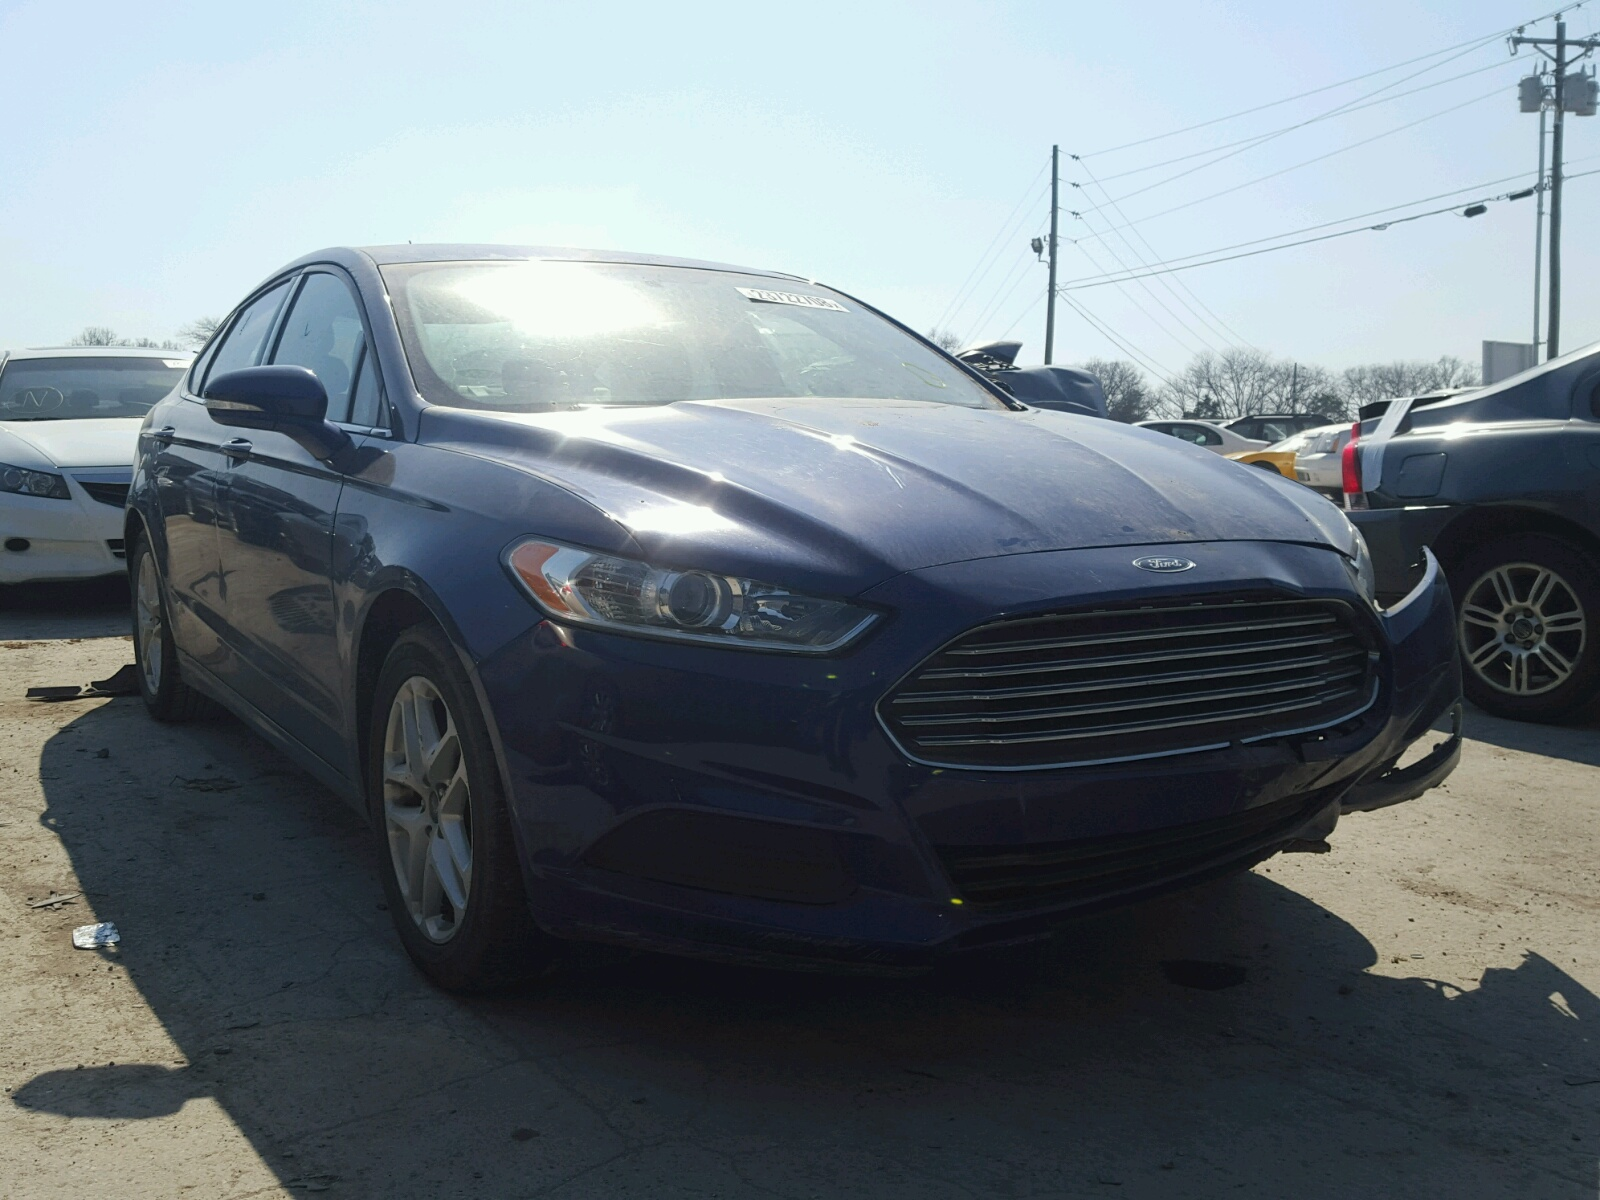 1fa6p0hd7e5364462 2014 Blue Ford Fusion Se On Sale In Tn 15l Left View